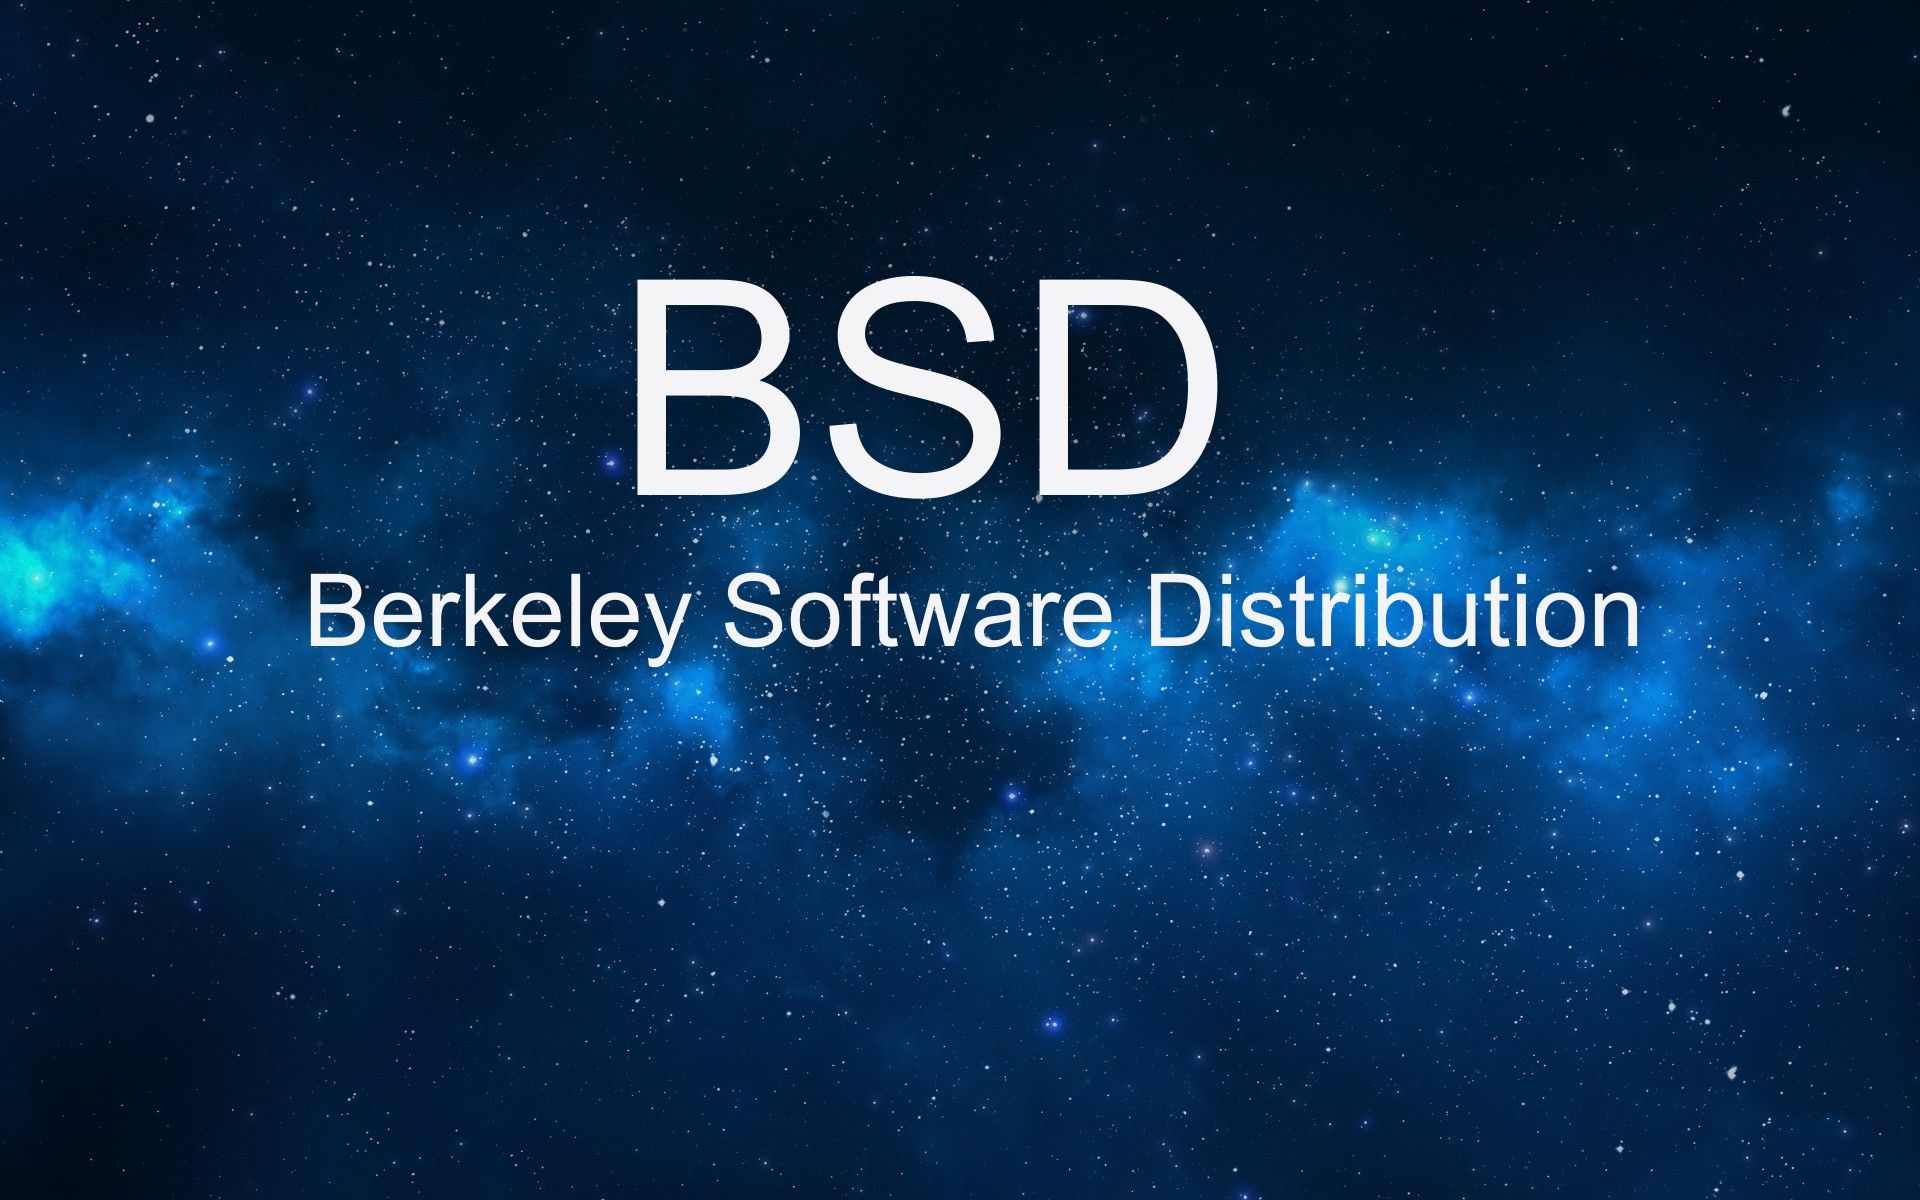 BetoBSD Berkeley Software Distribution Page 5 1920x1200